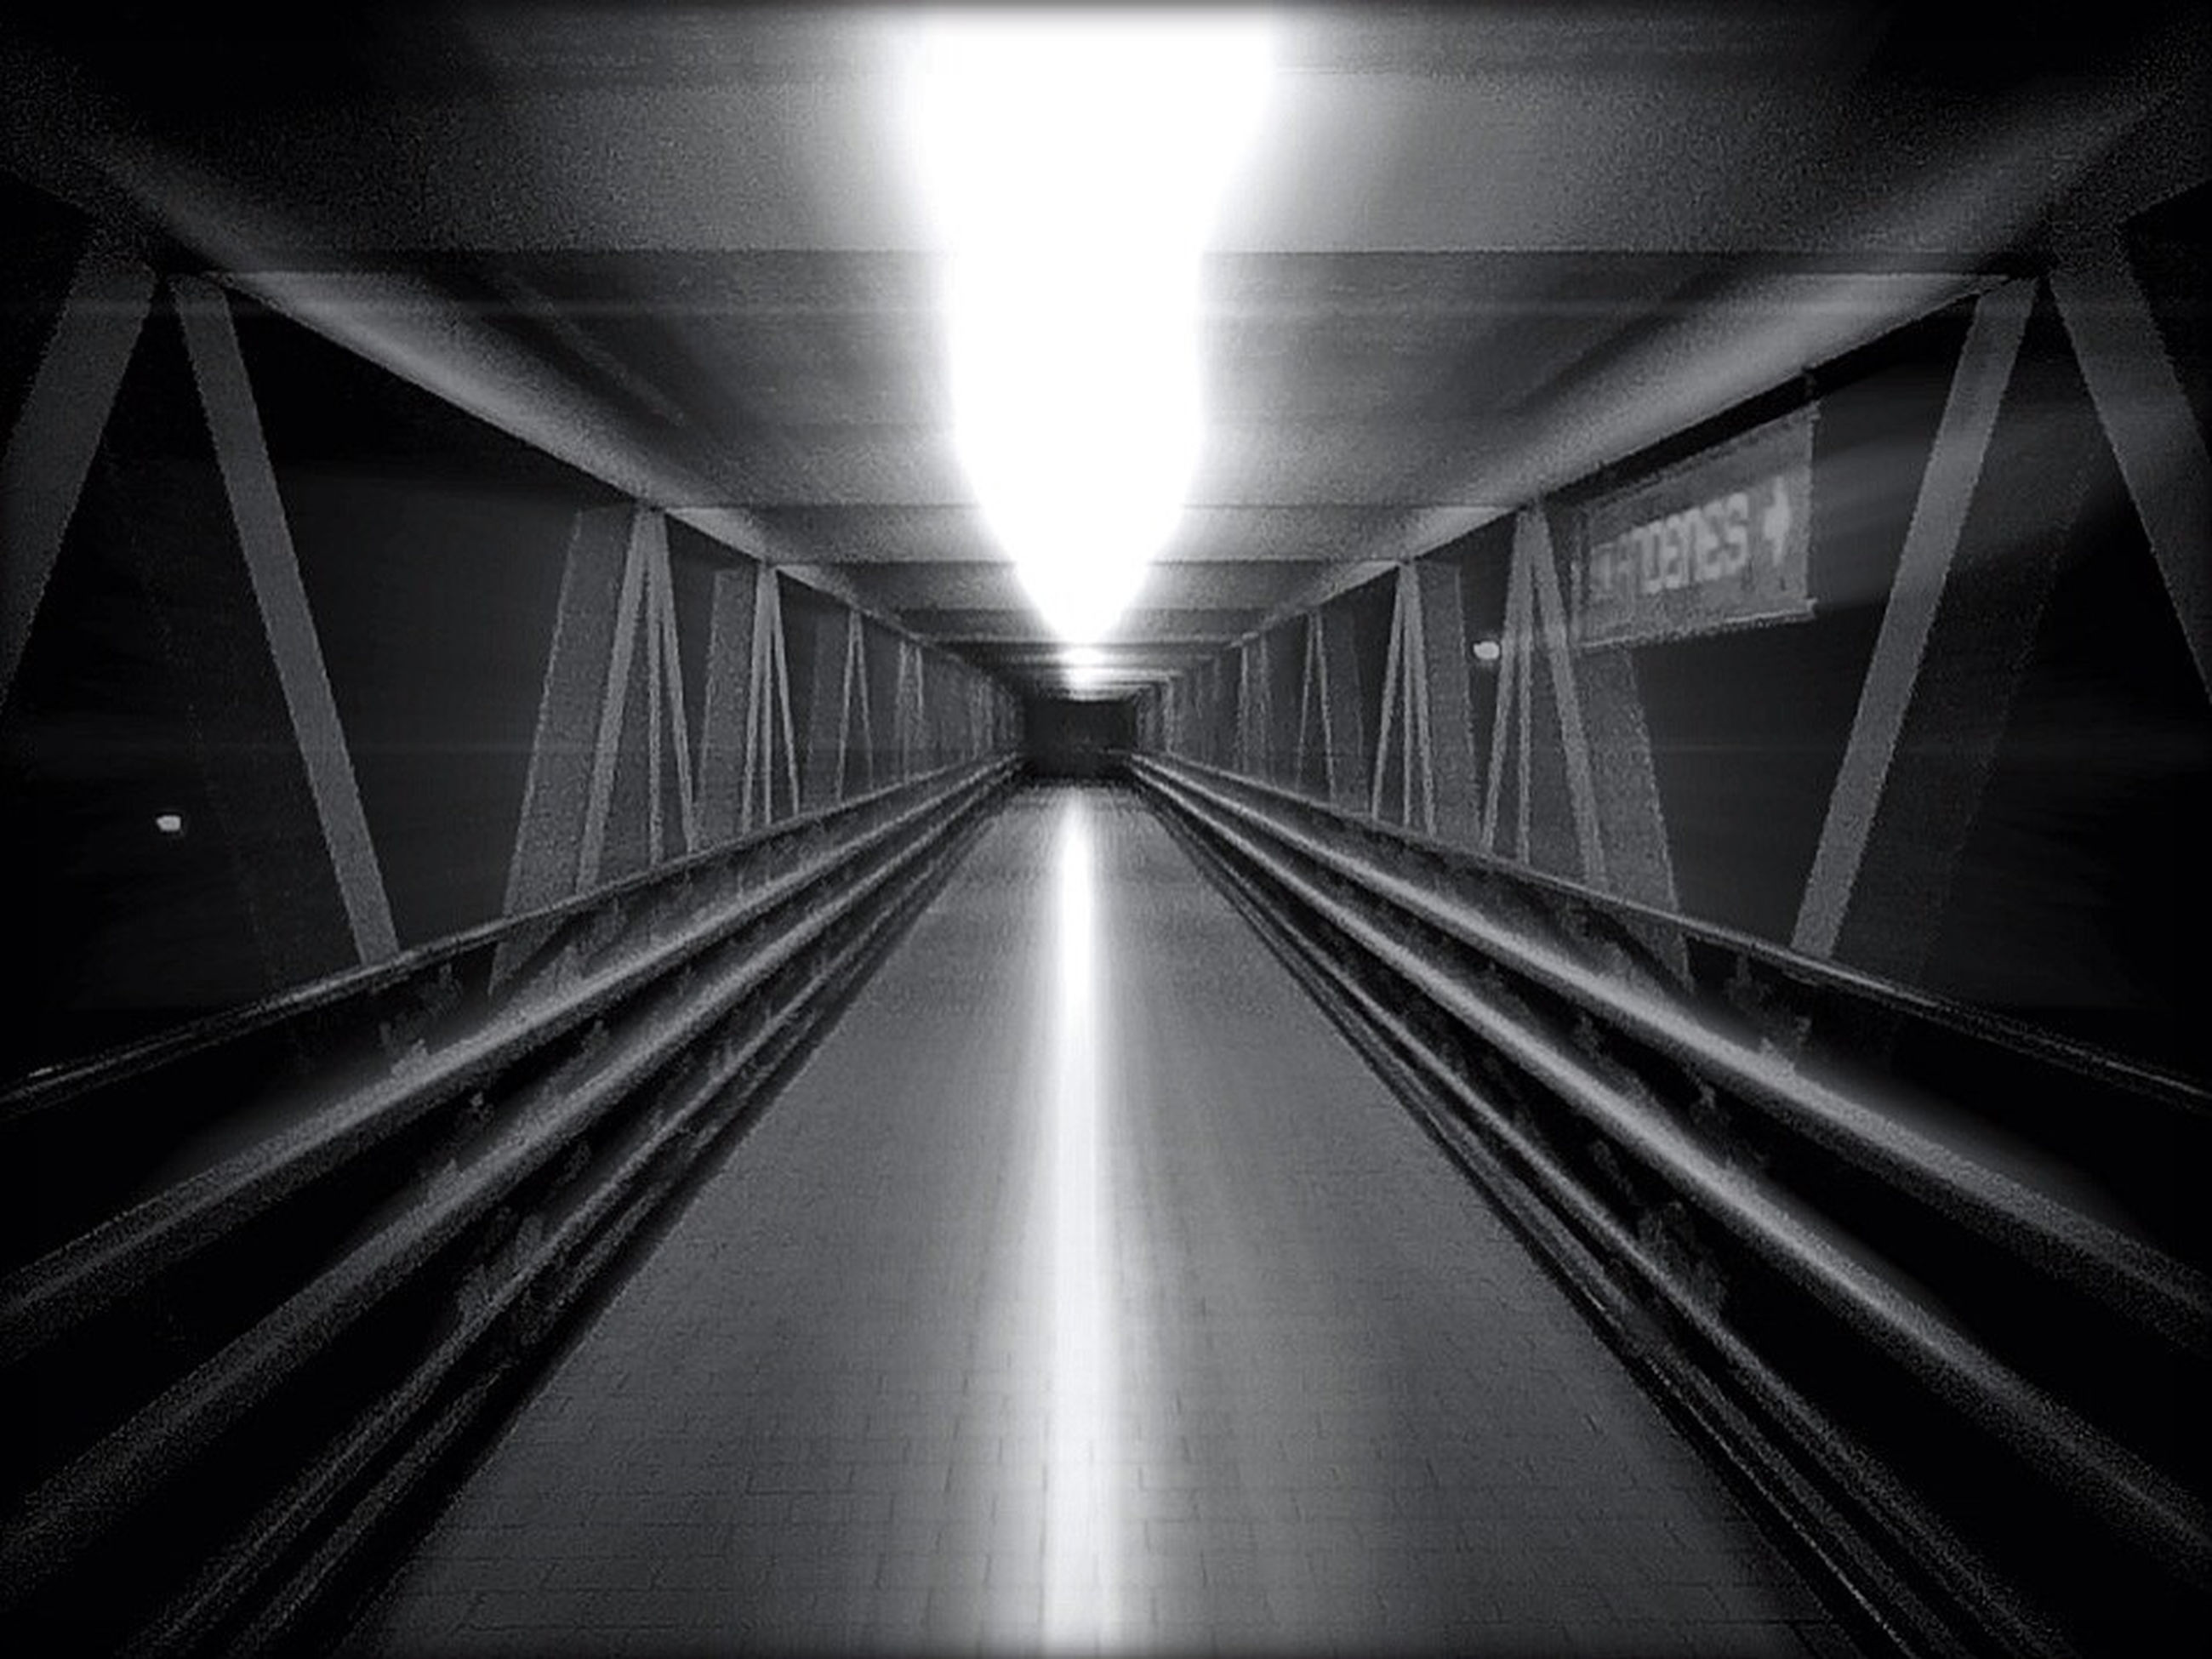 the way forward, diminishing perspective, architecture, indoors, built structure, vanishing point, illuminated, transportation, connection, ceiling, long, bridge - man made structure, modern, lighting equipment, empty, no people, tunnel, light - natural phenomenon, reflection, narrow